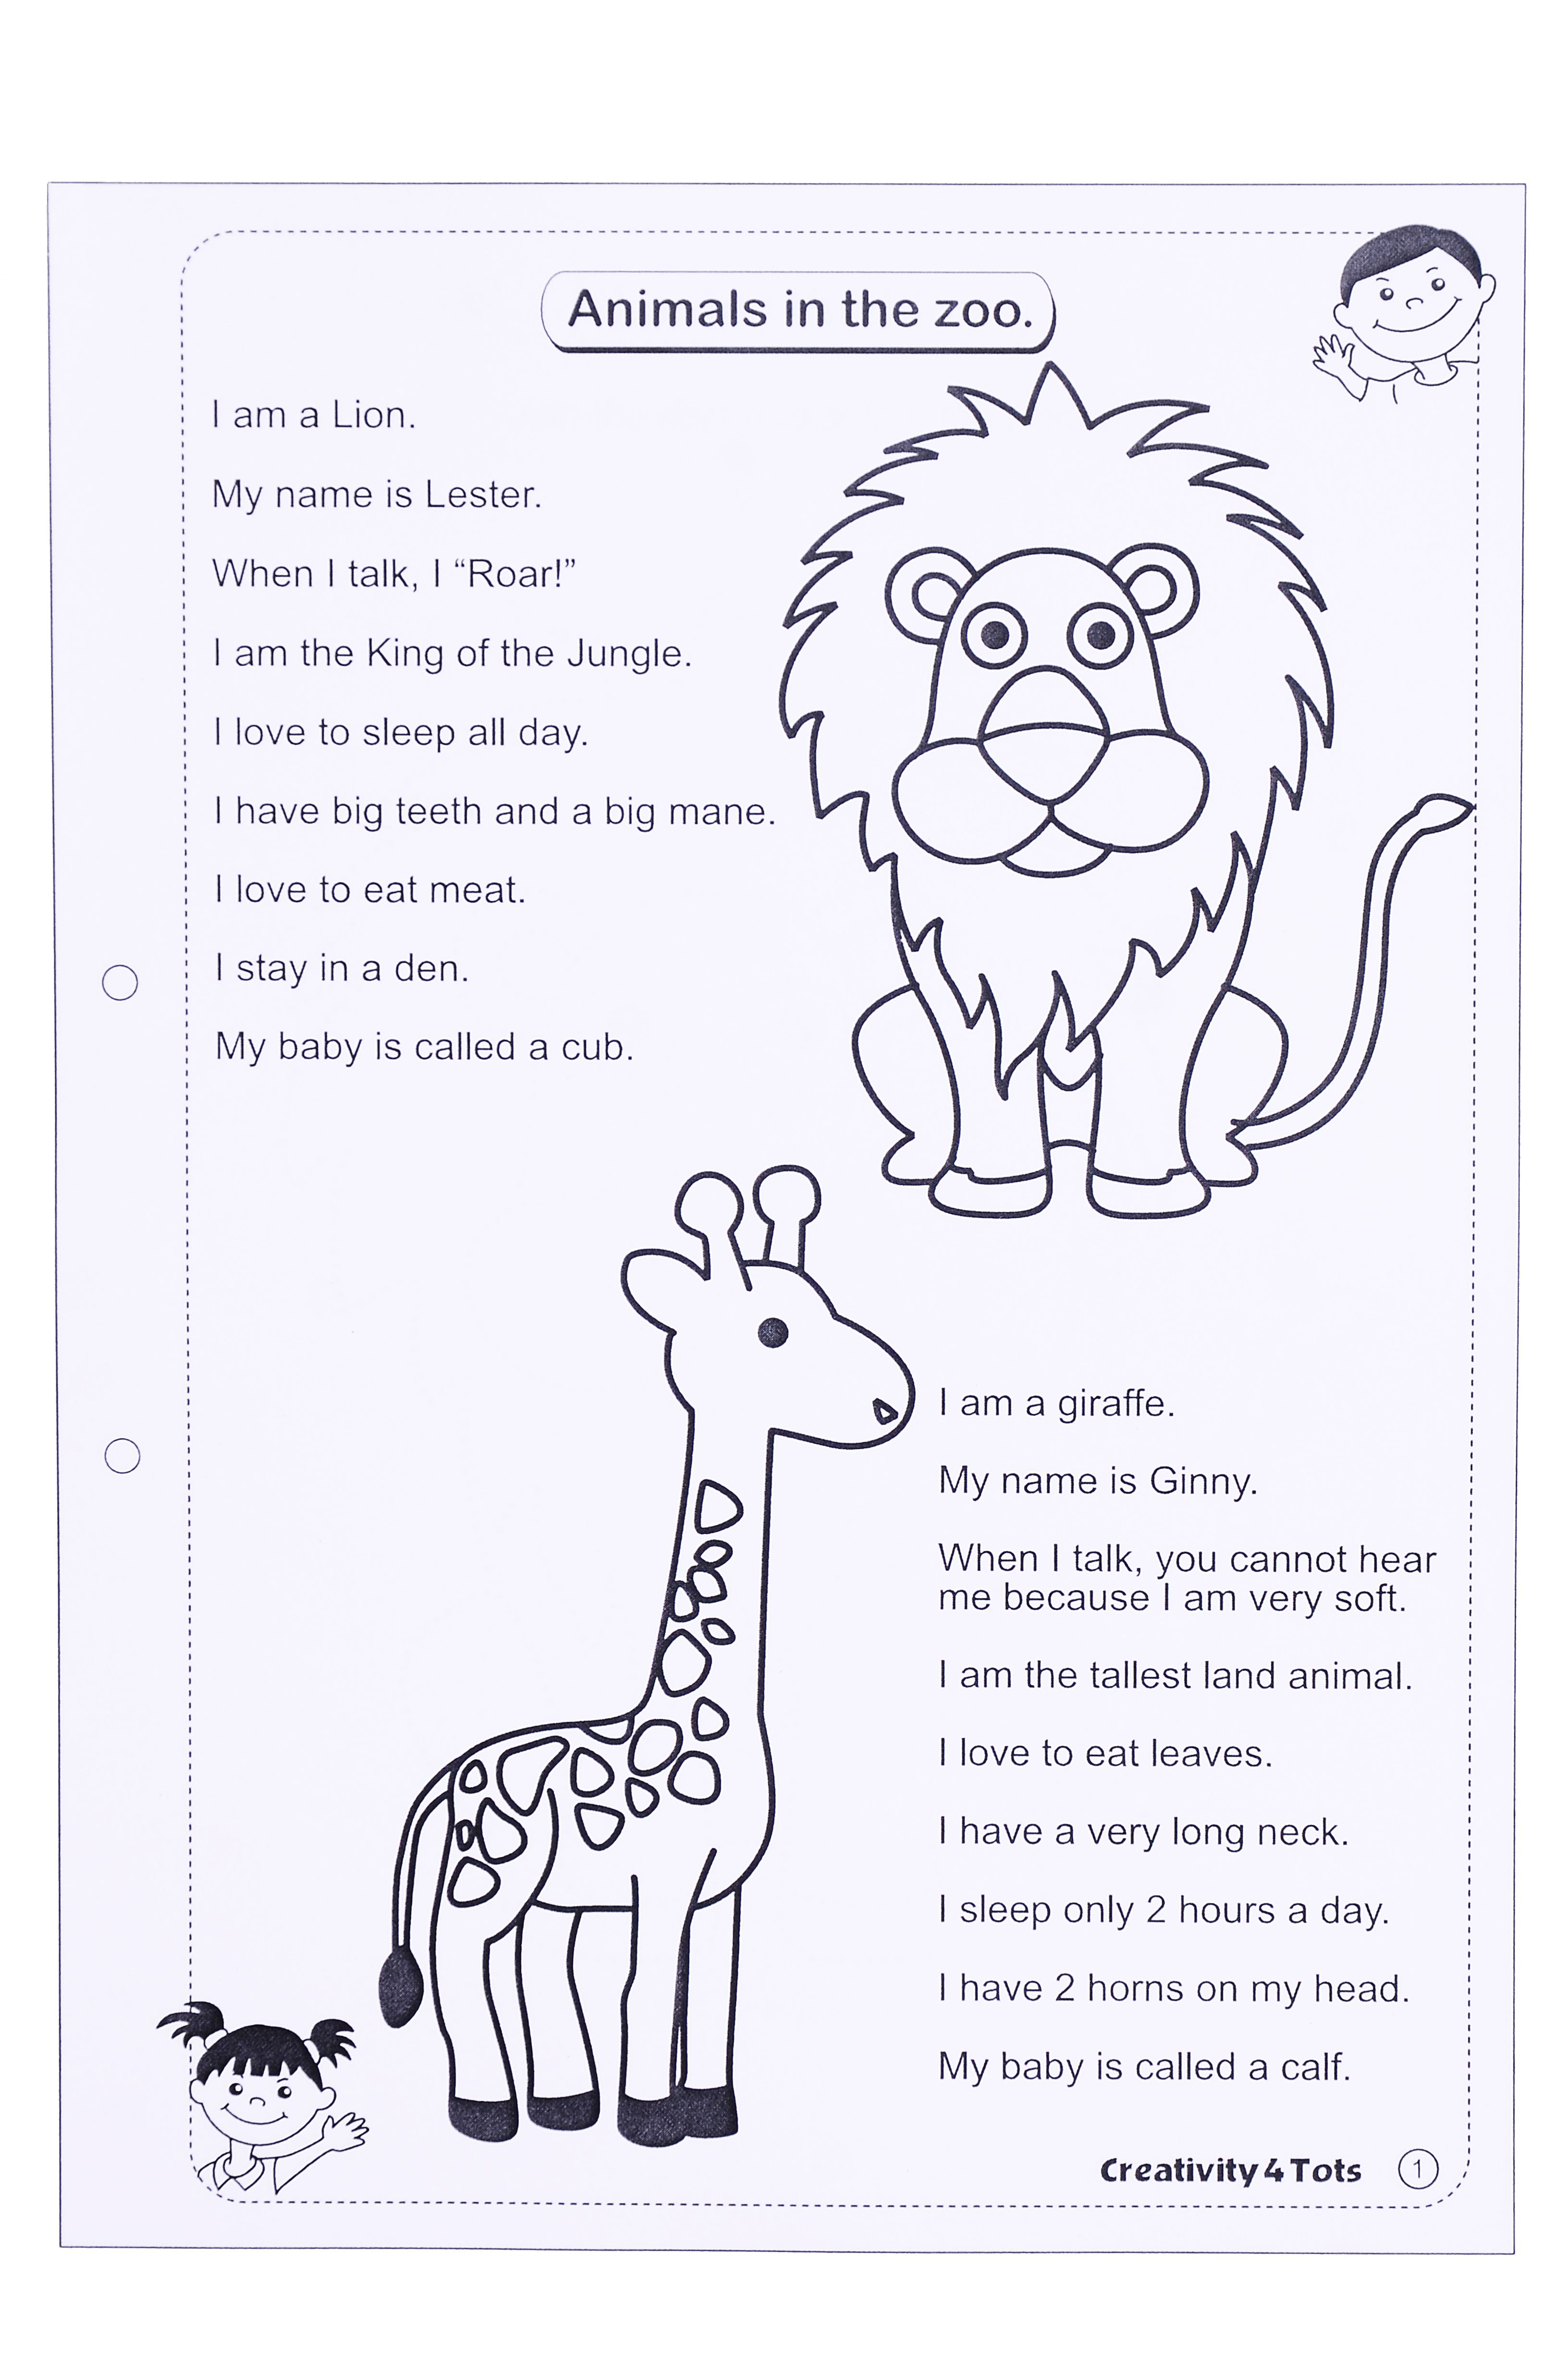 Zoo Animals Worksheet - This worksheet is designed to teach the child about  zoo animals. The worksheet co…   Animal worksheets [ 4928 x 3264 Pixel ]